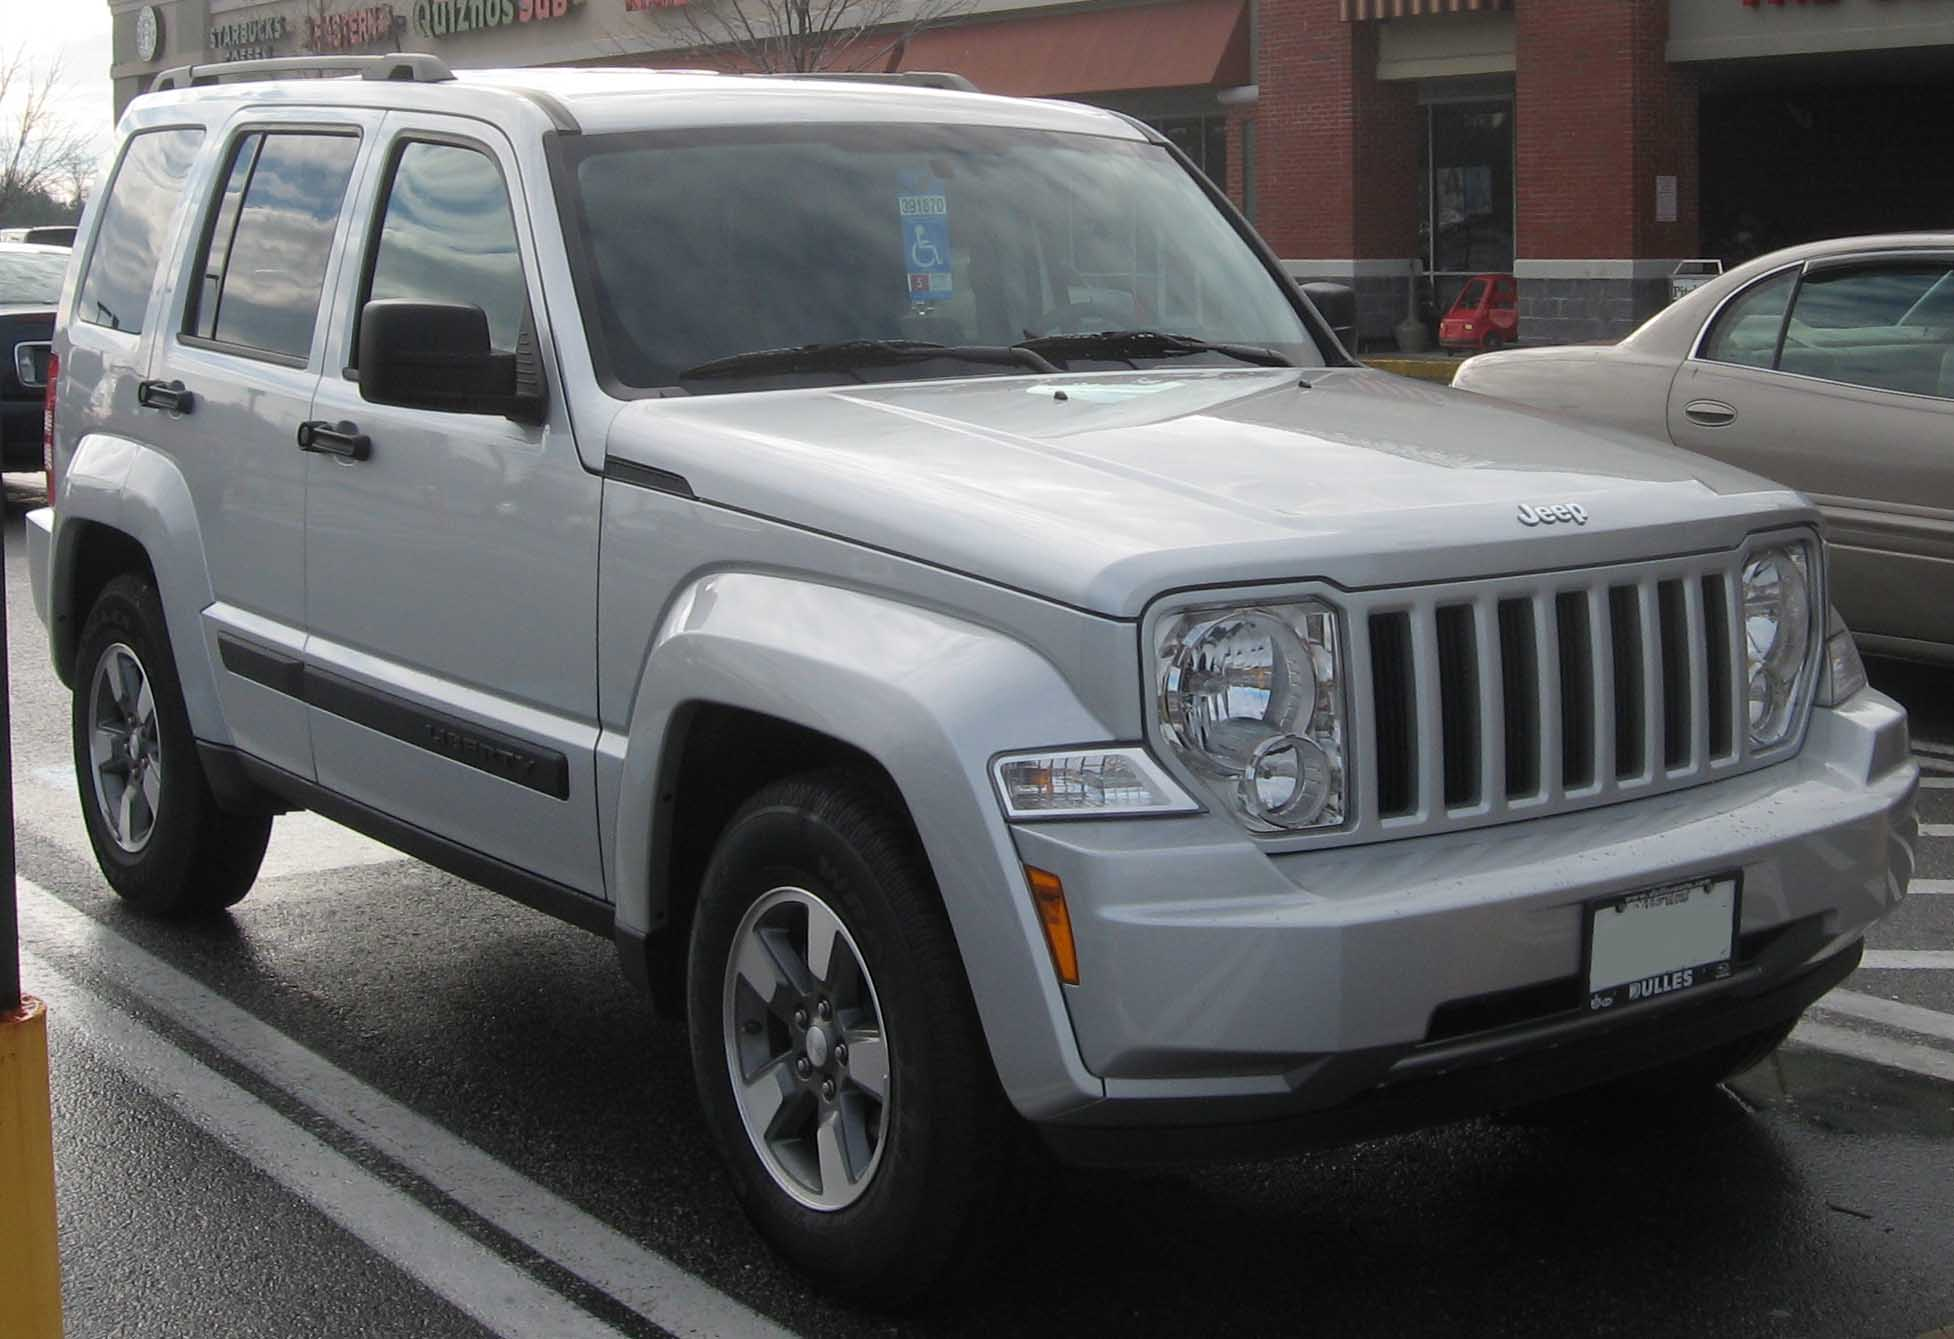 2008 Jeep Liberty : Vaizdas jeep liberty g vikipedija